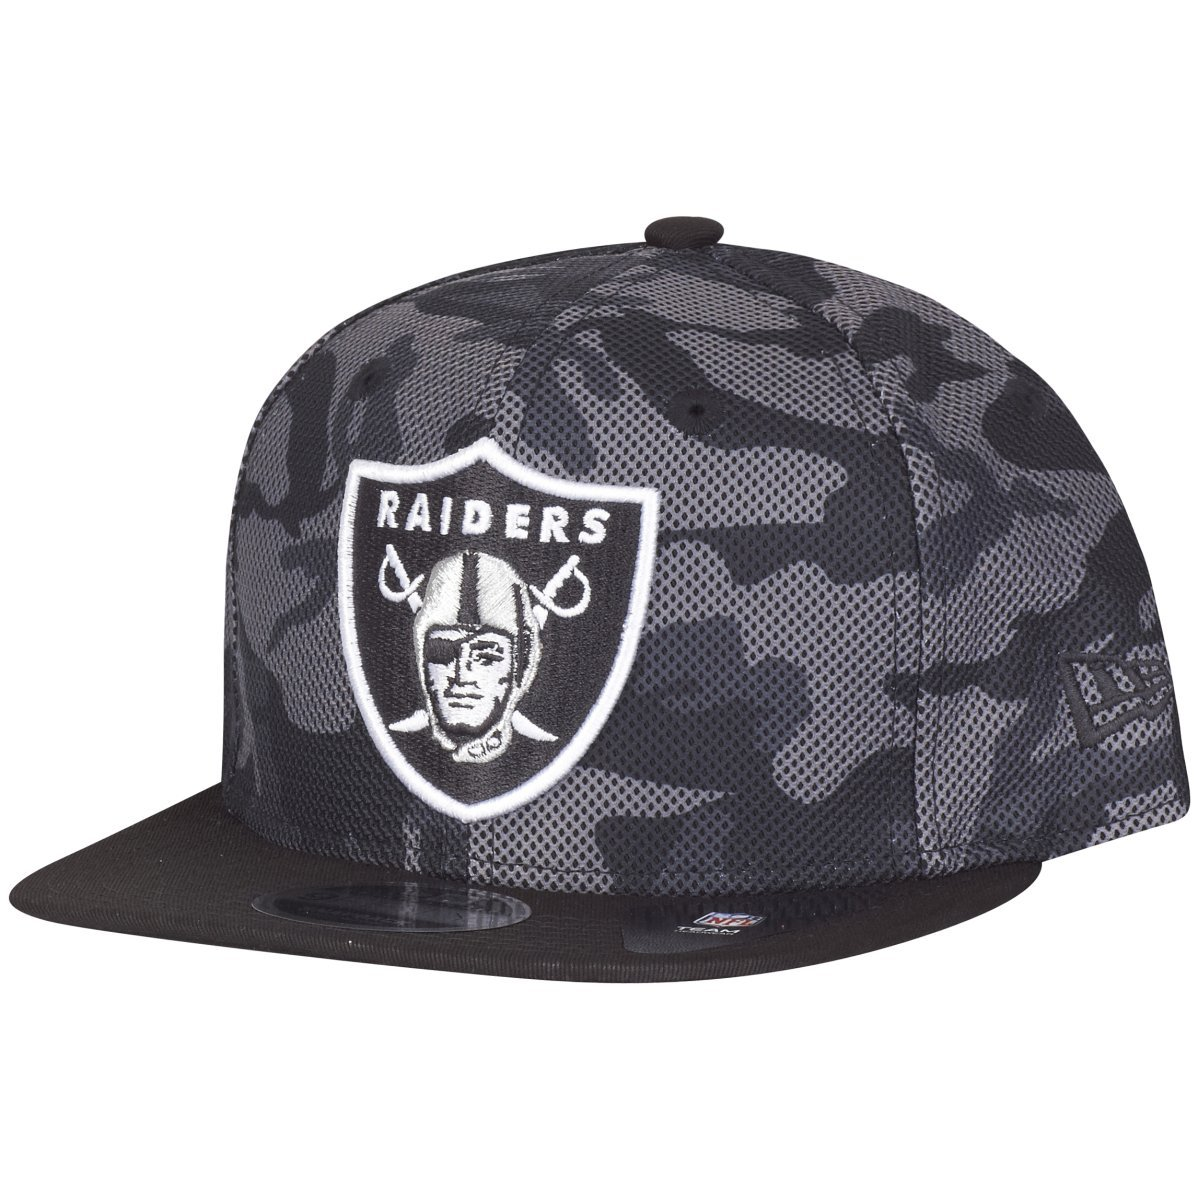 Gorra 9Fifty Mesh Camo Raiders by New Era gorragorra de beisbol (S ...